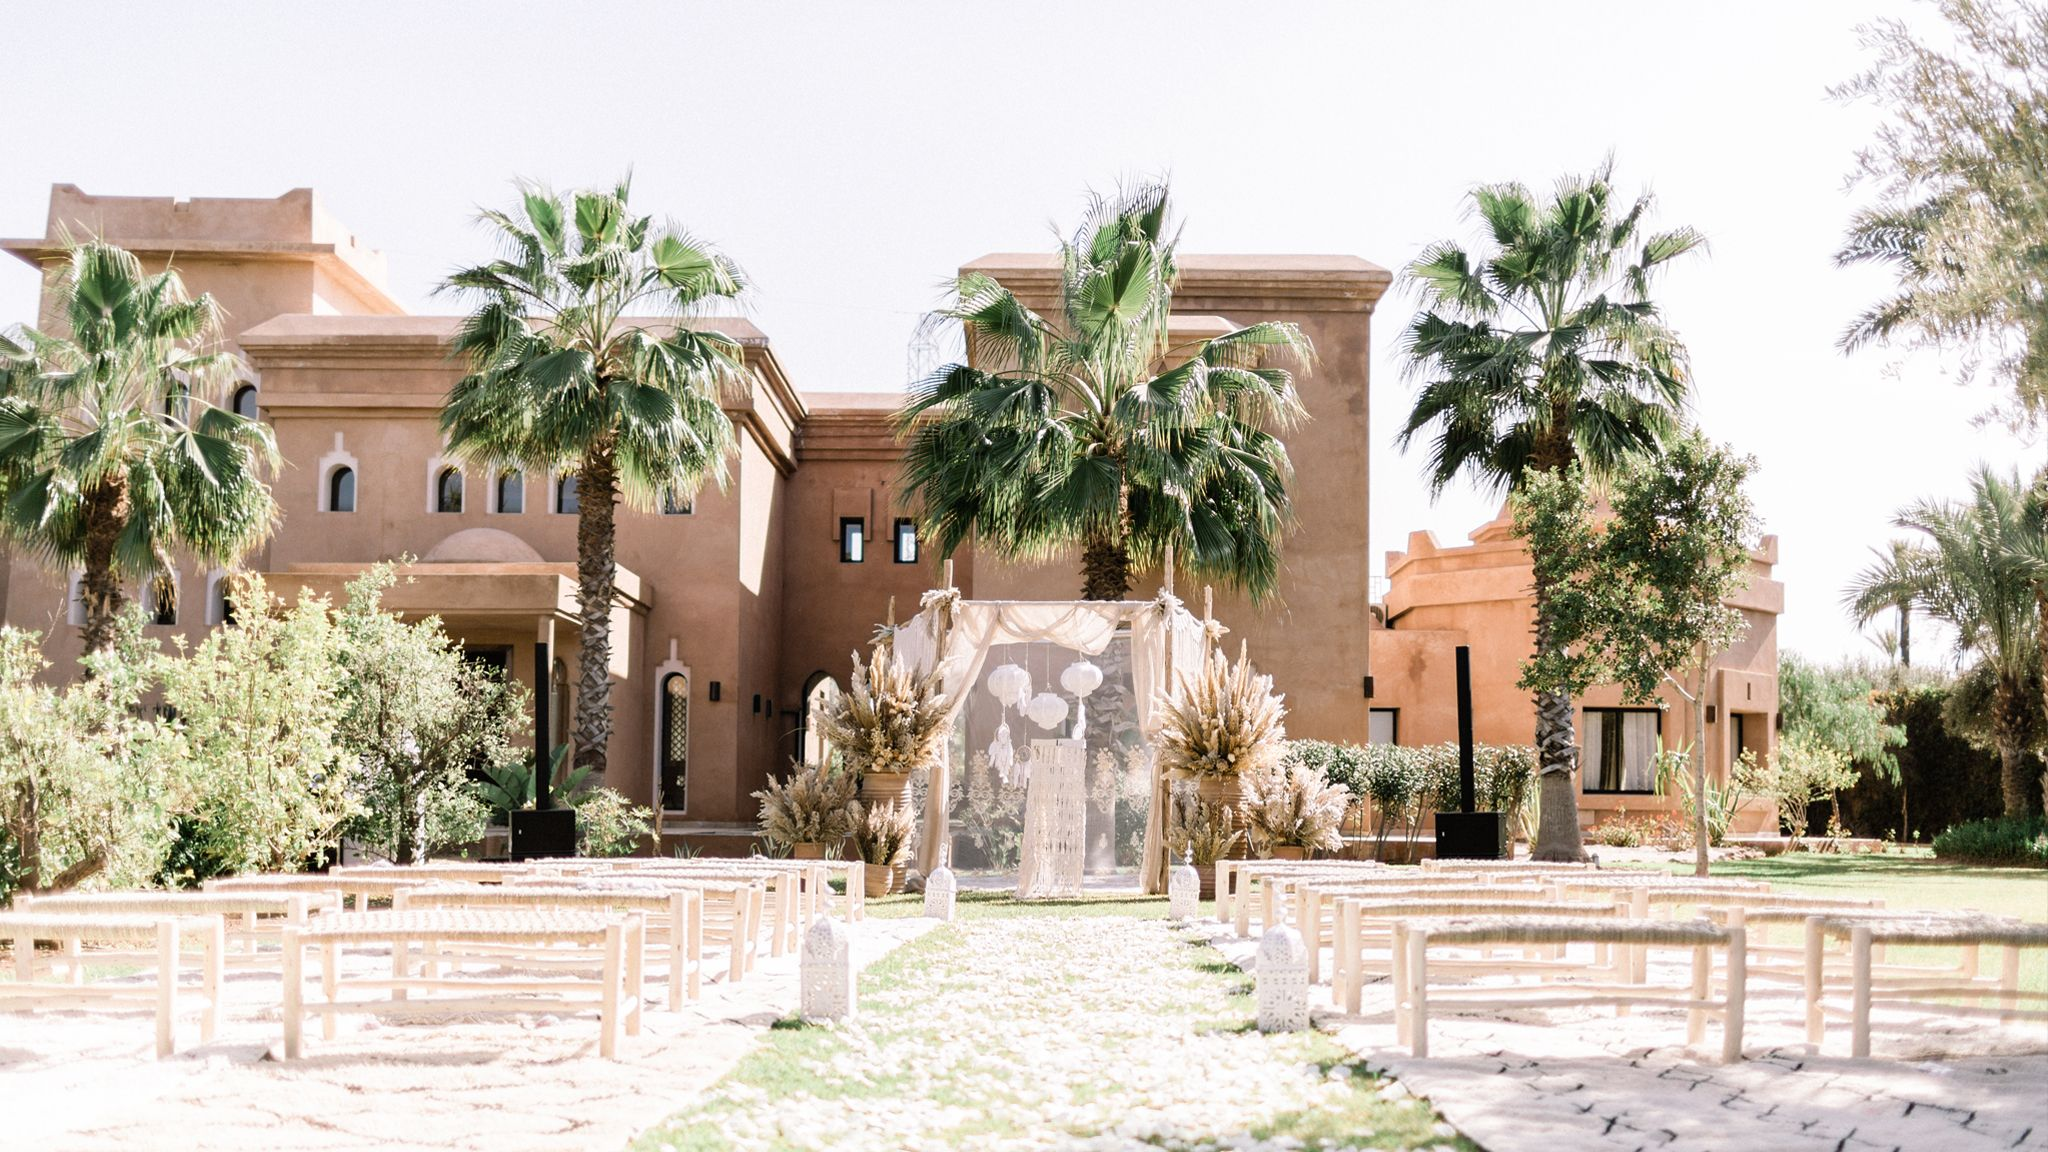 A Romantic Wedding at the Villa Dar Moucha in Morocco - Bespoke by Hello Event - Ceremony Setup Arch